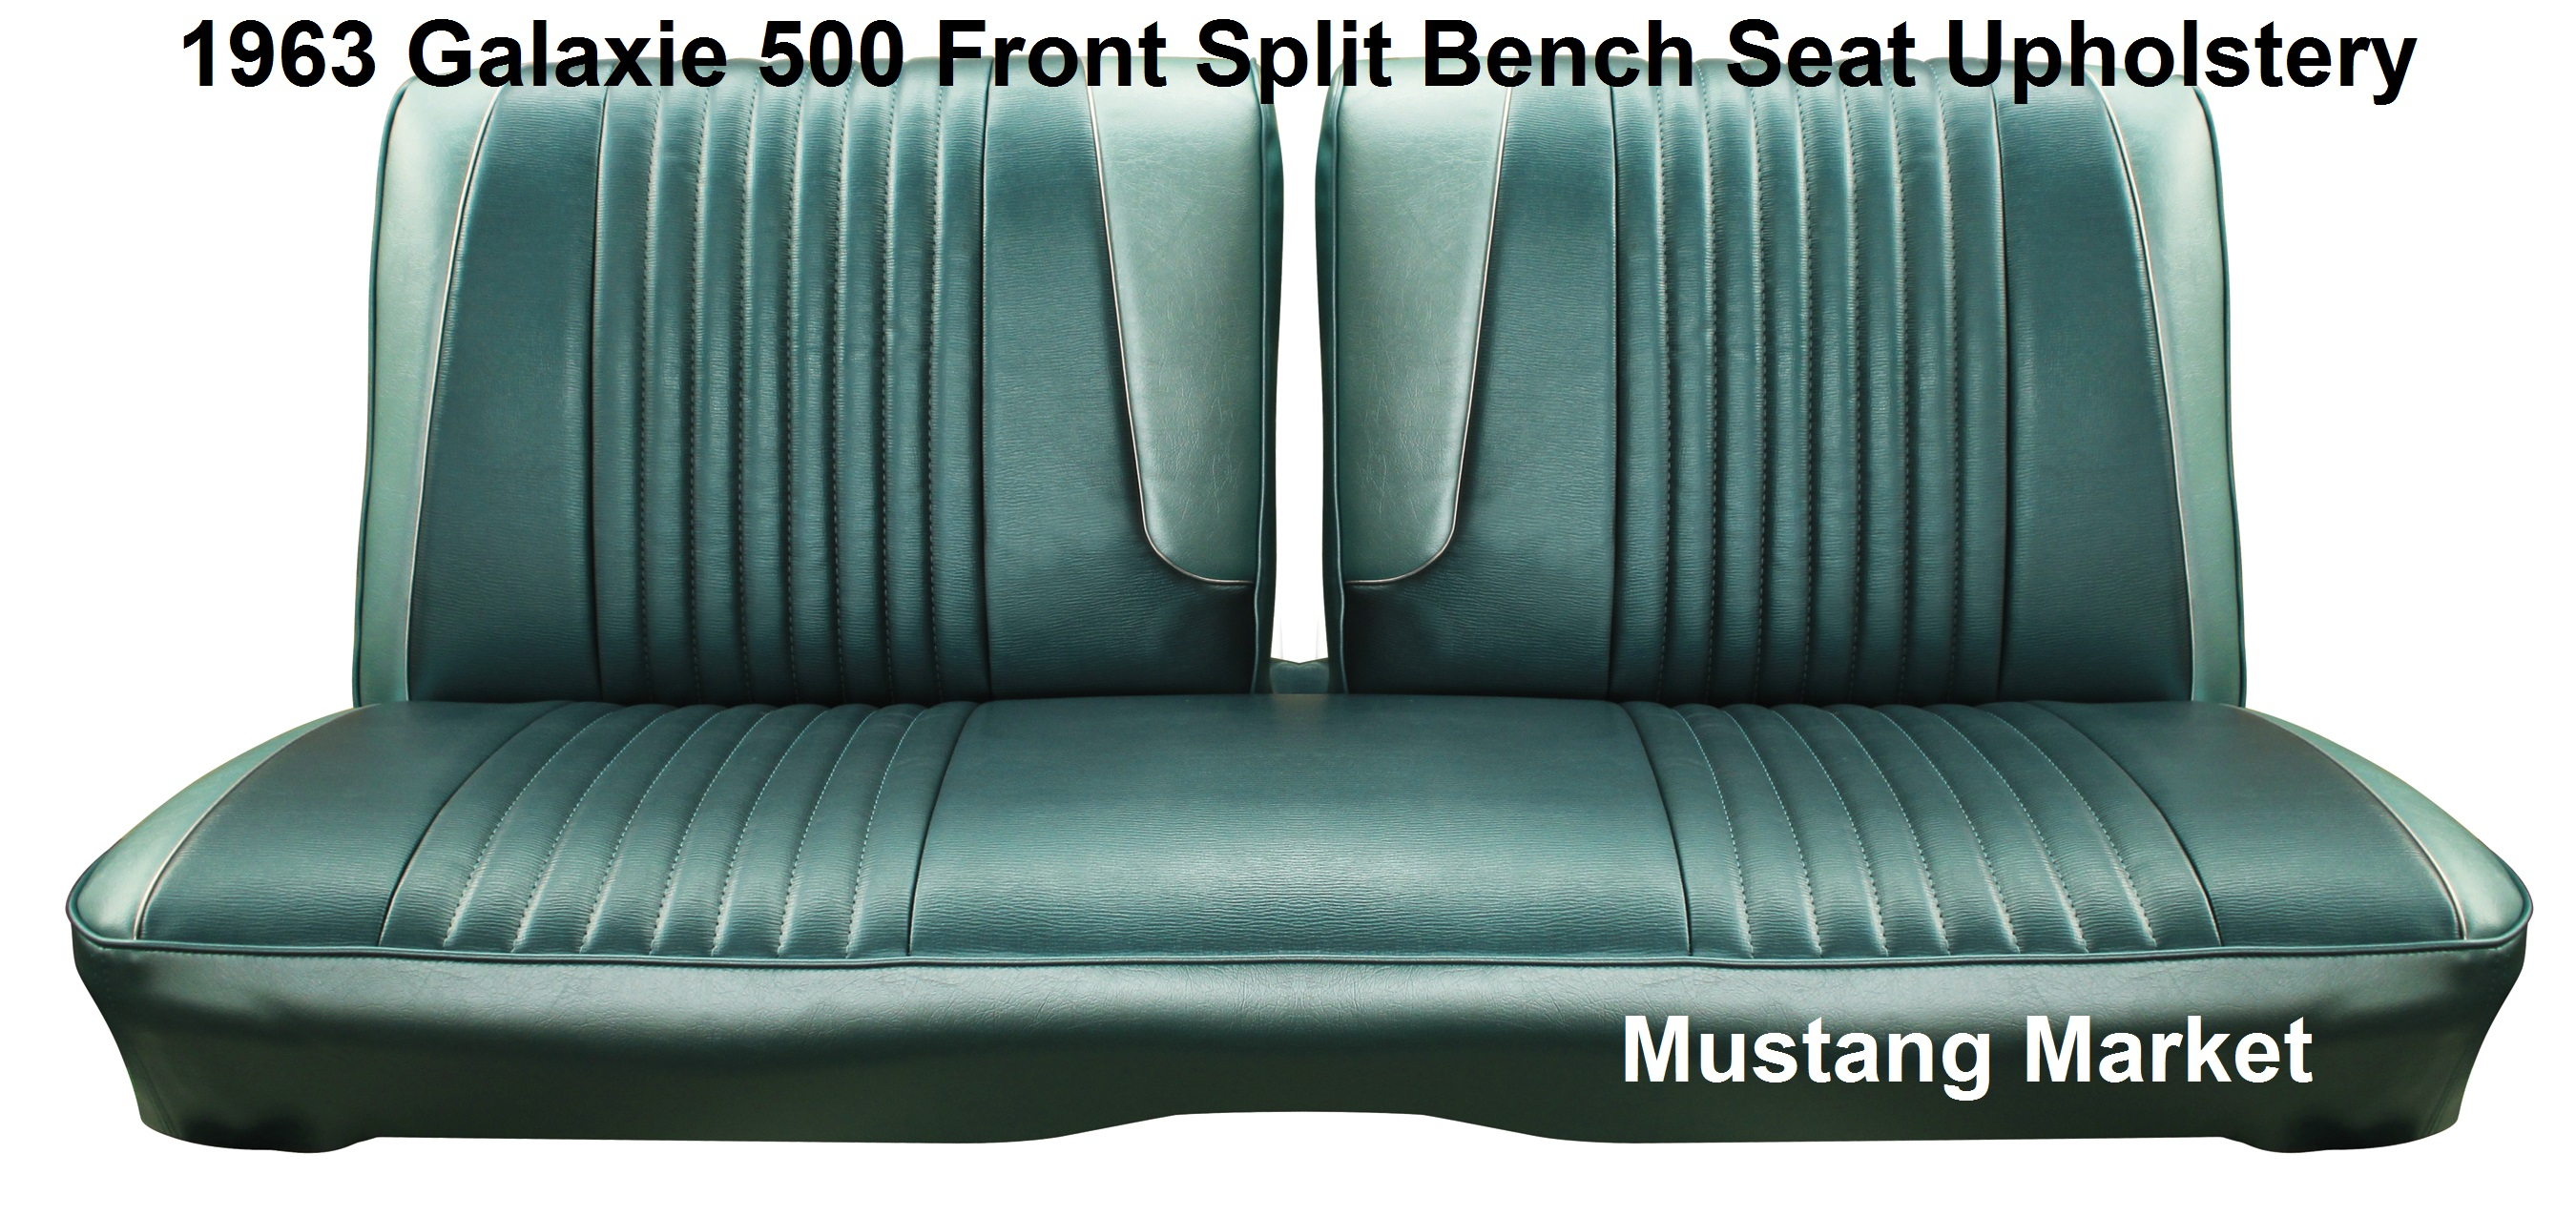 Very Impressive portraiture of 1963 63 Galaxie Split Bench Seat Upholstery with #375456 color and 2700x1275 pixels